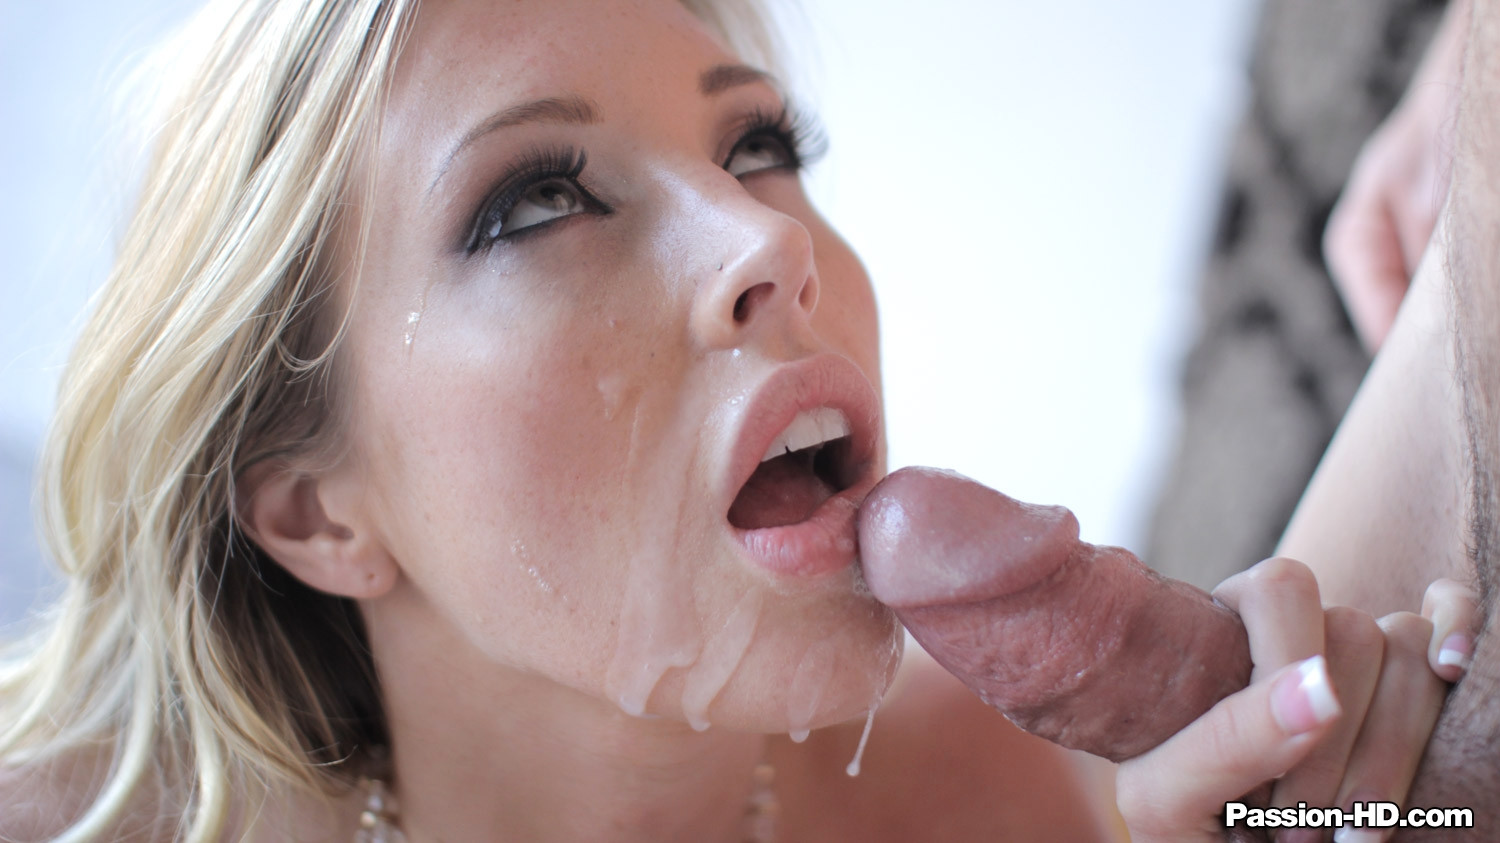 Kasey chase sucking dick to get a big facial 9